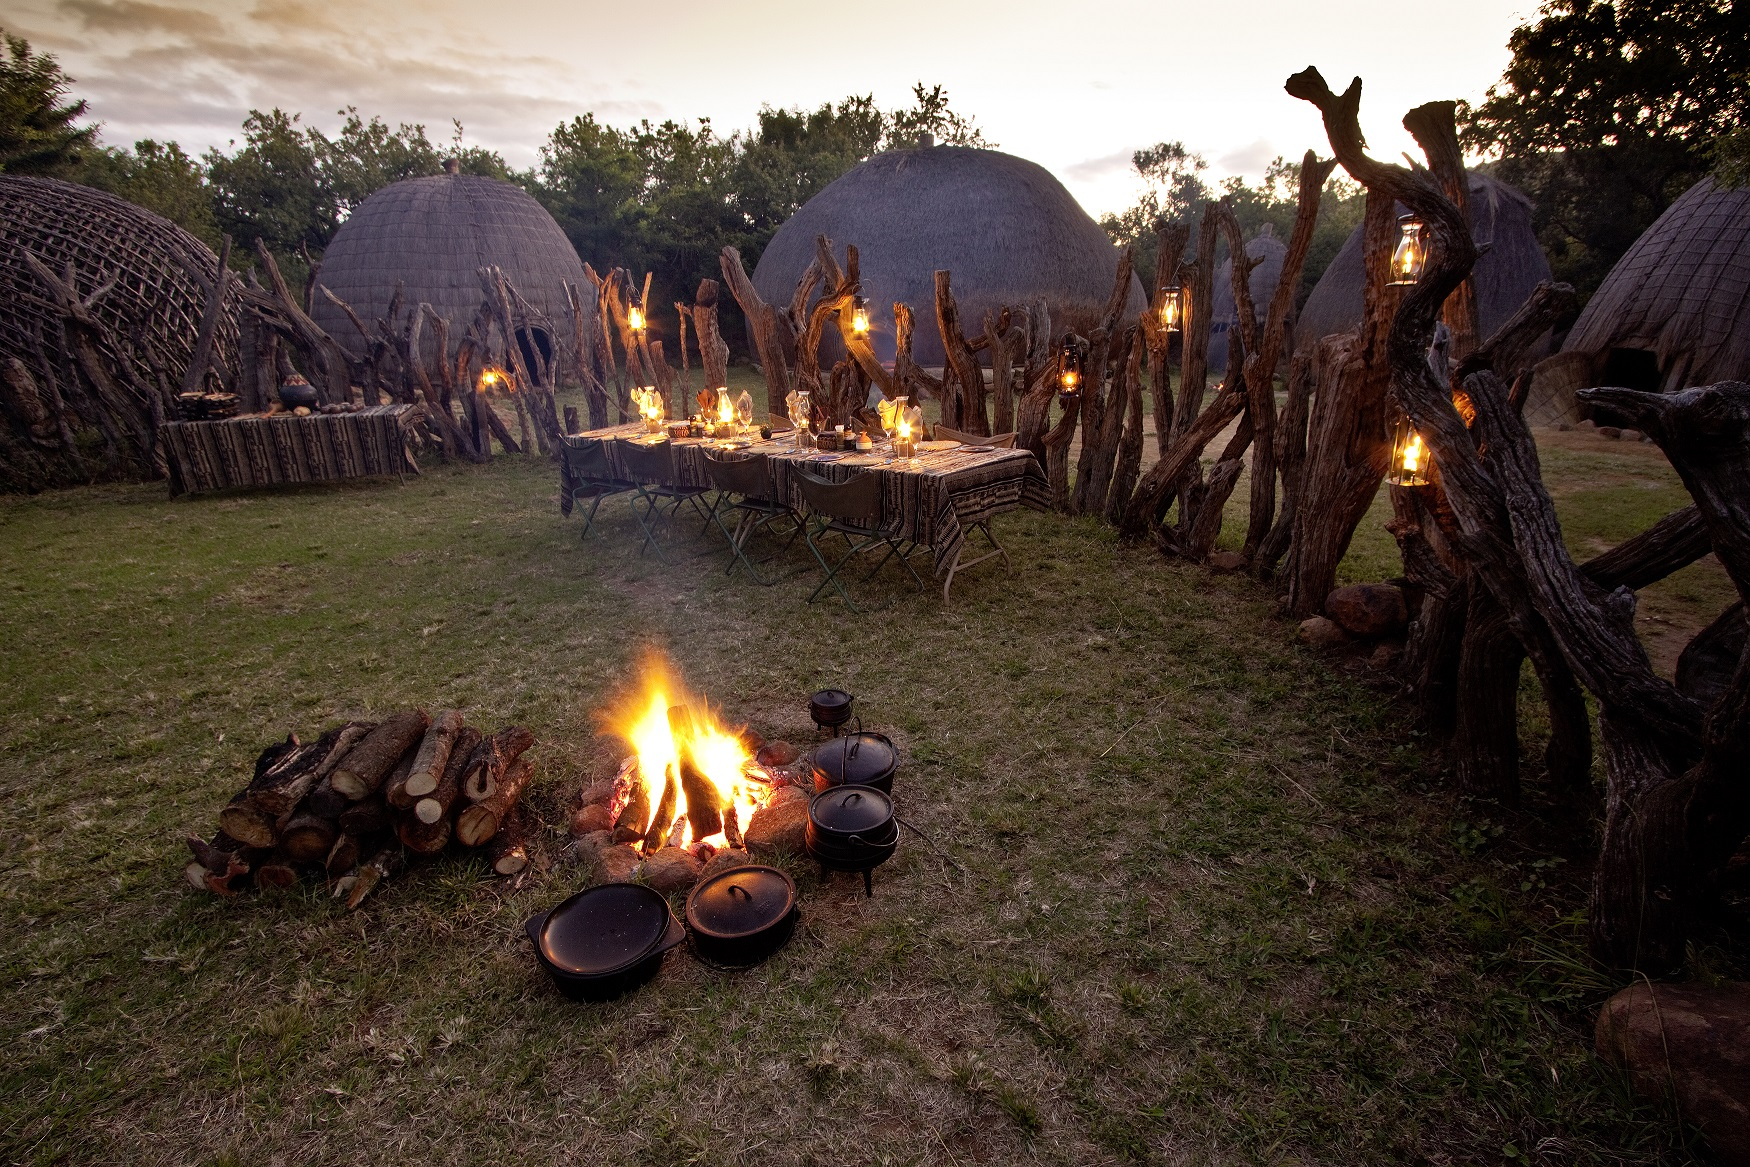 isibindi-zulu-boma-dinner-1 Reduced